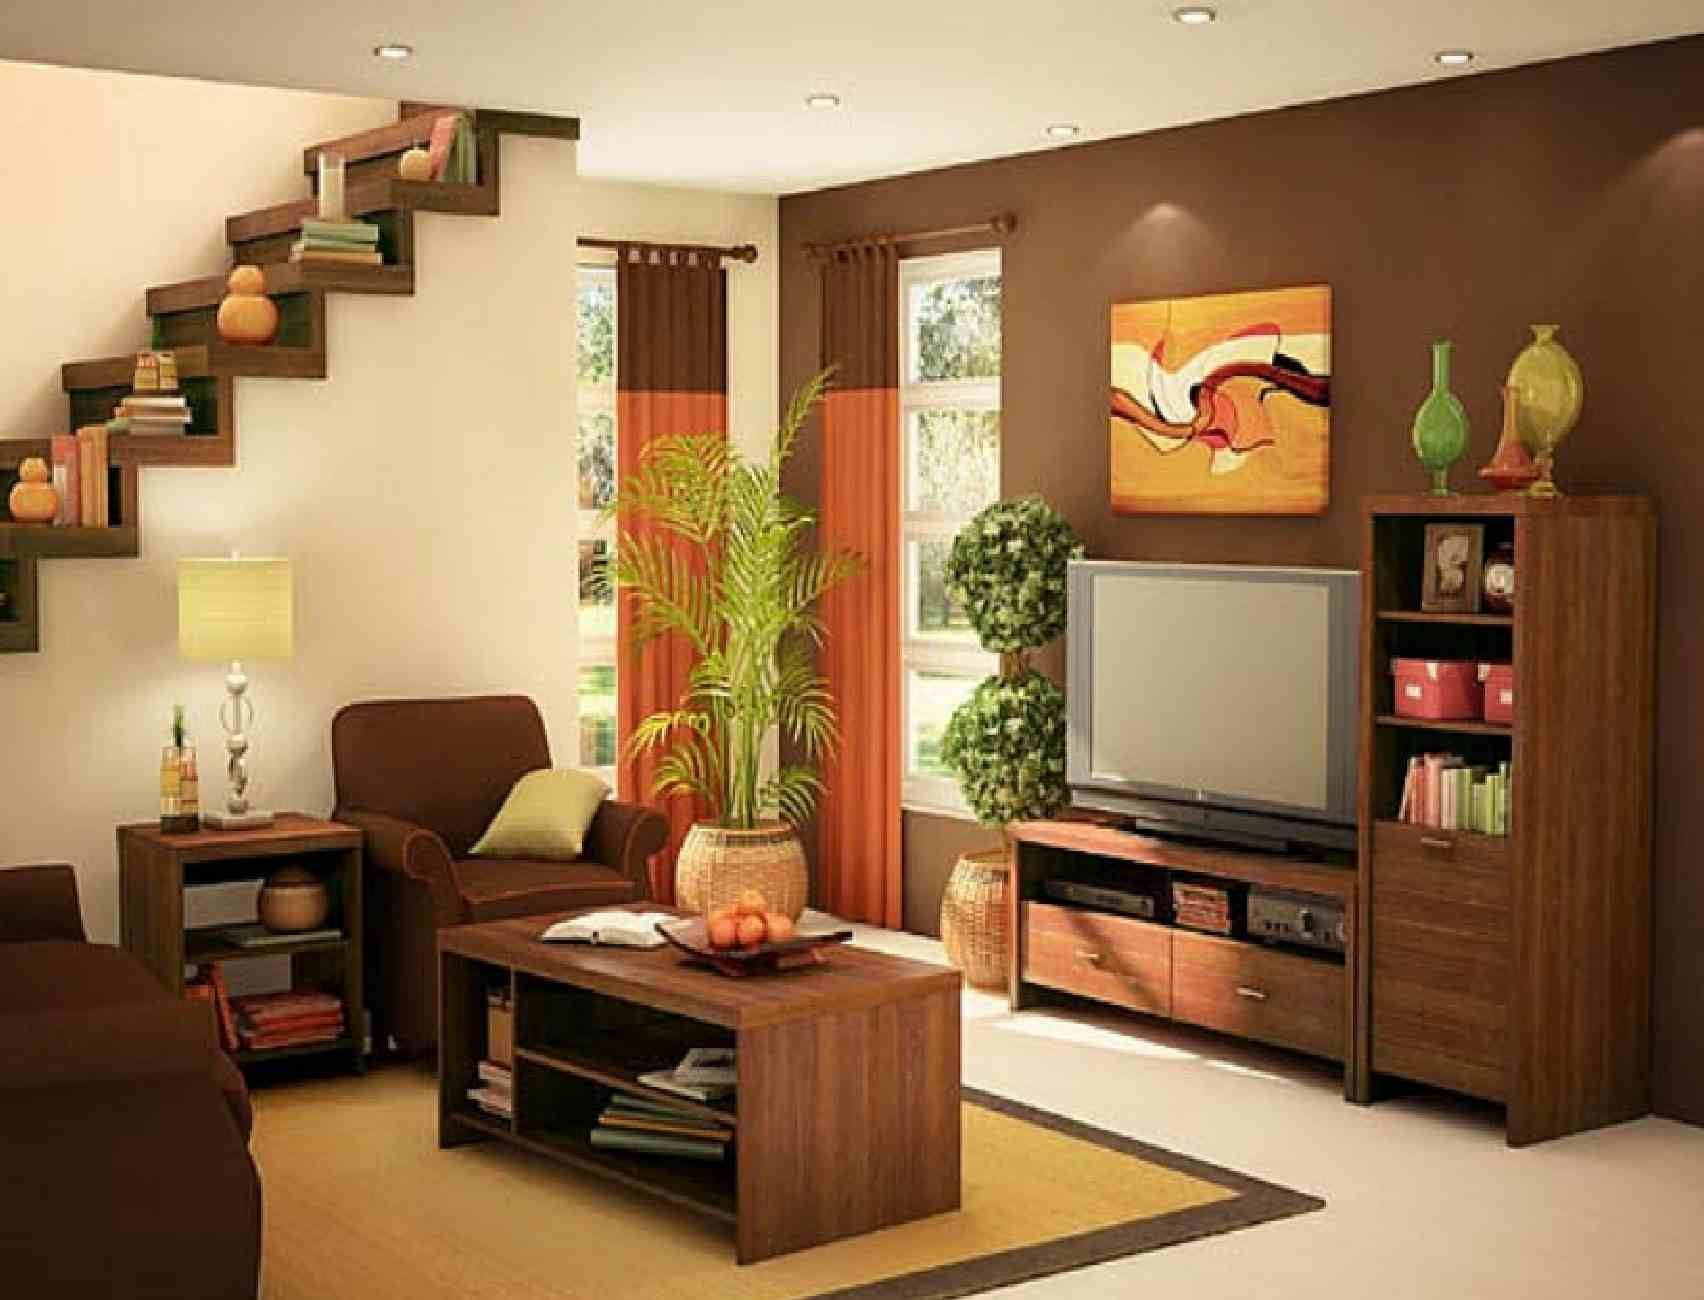 Amazing Simple Furniture Design For Living Room : Cabinet Hardware ...